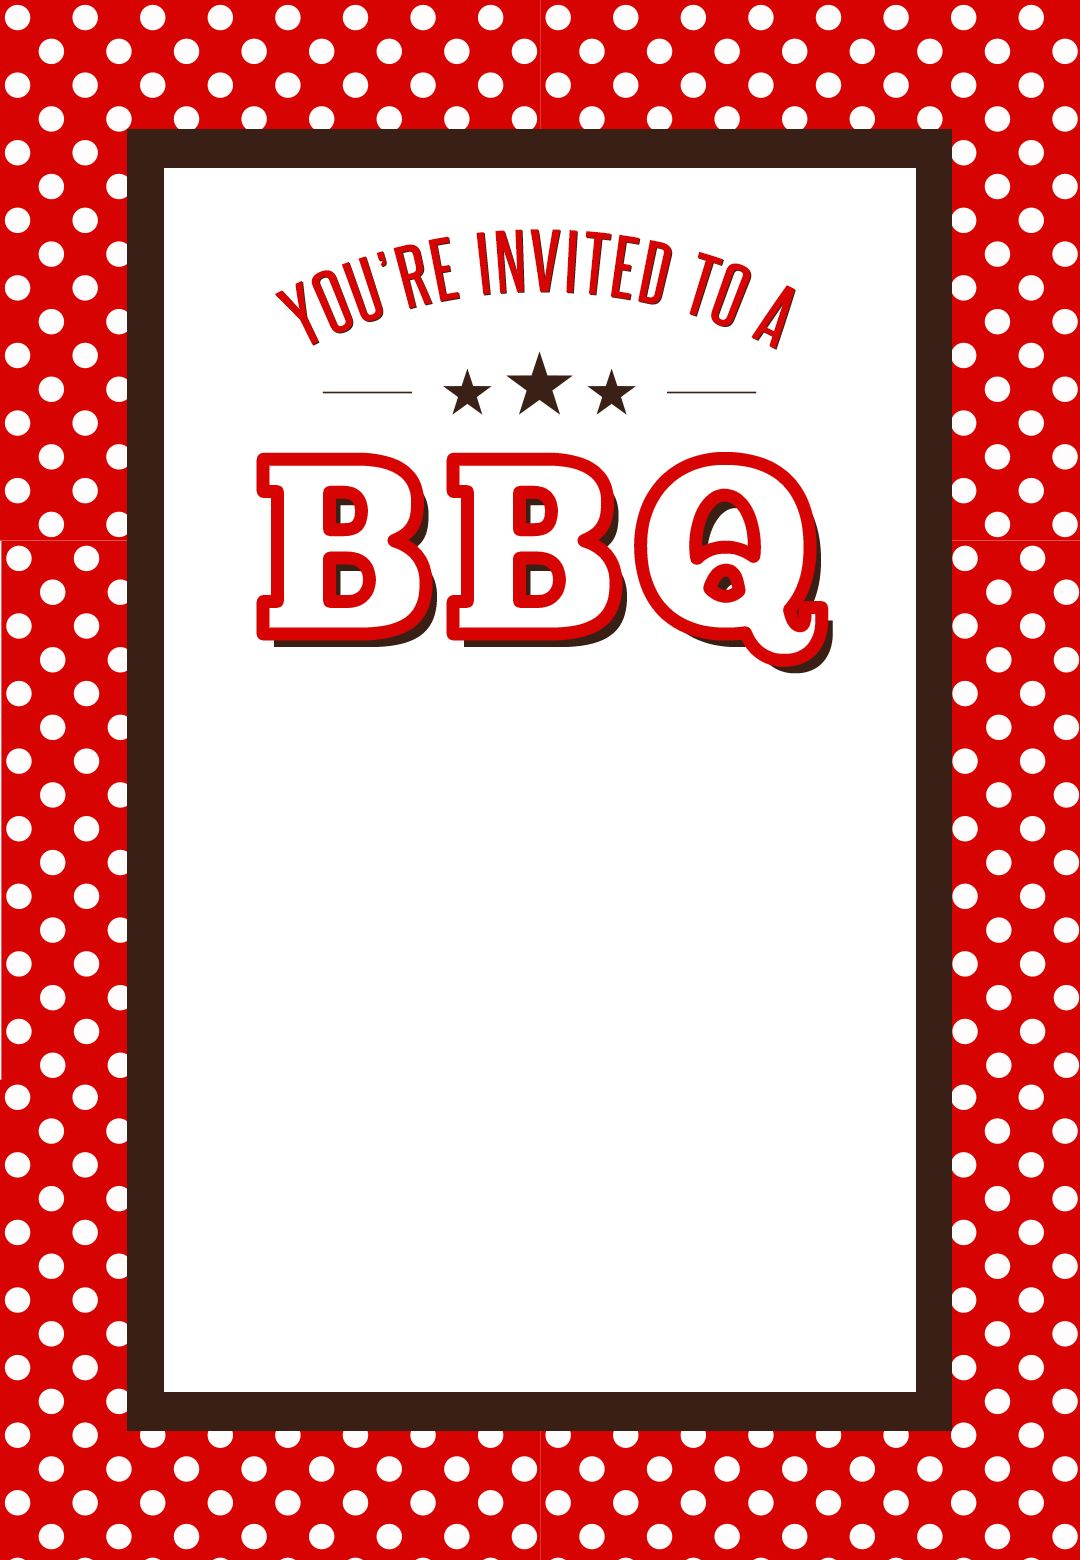 BBQ Party #Invitation Free Printables | BBQ Party Ideas ...